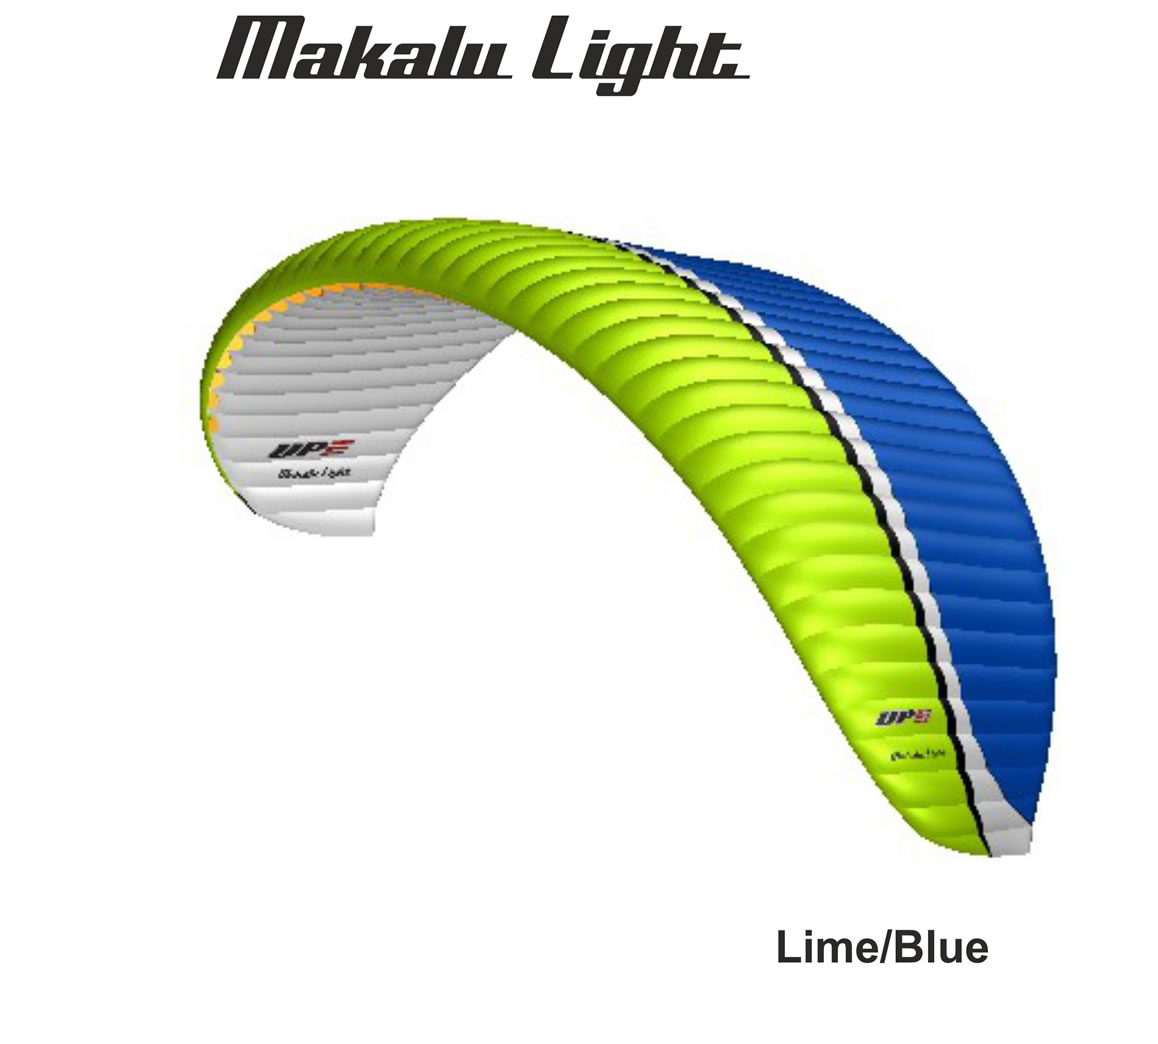 Mackalu light 2015